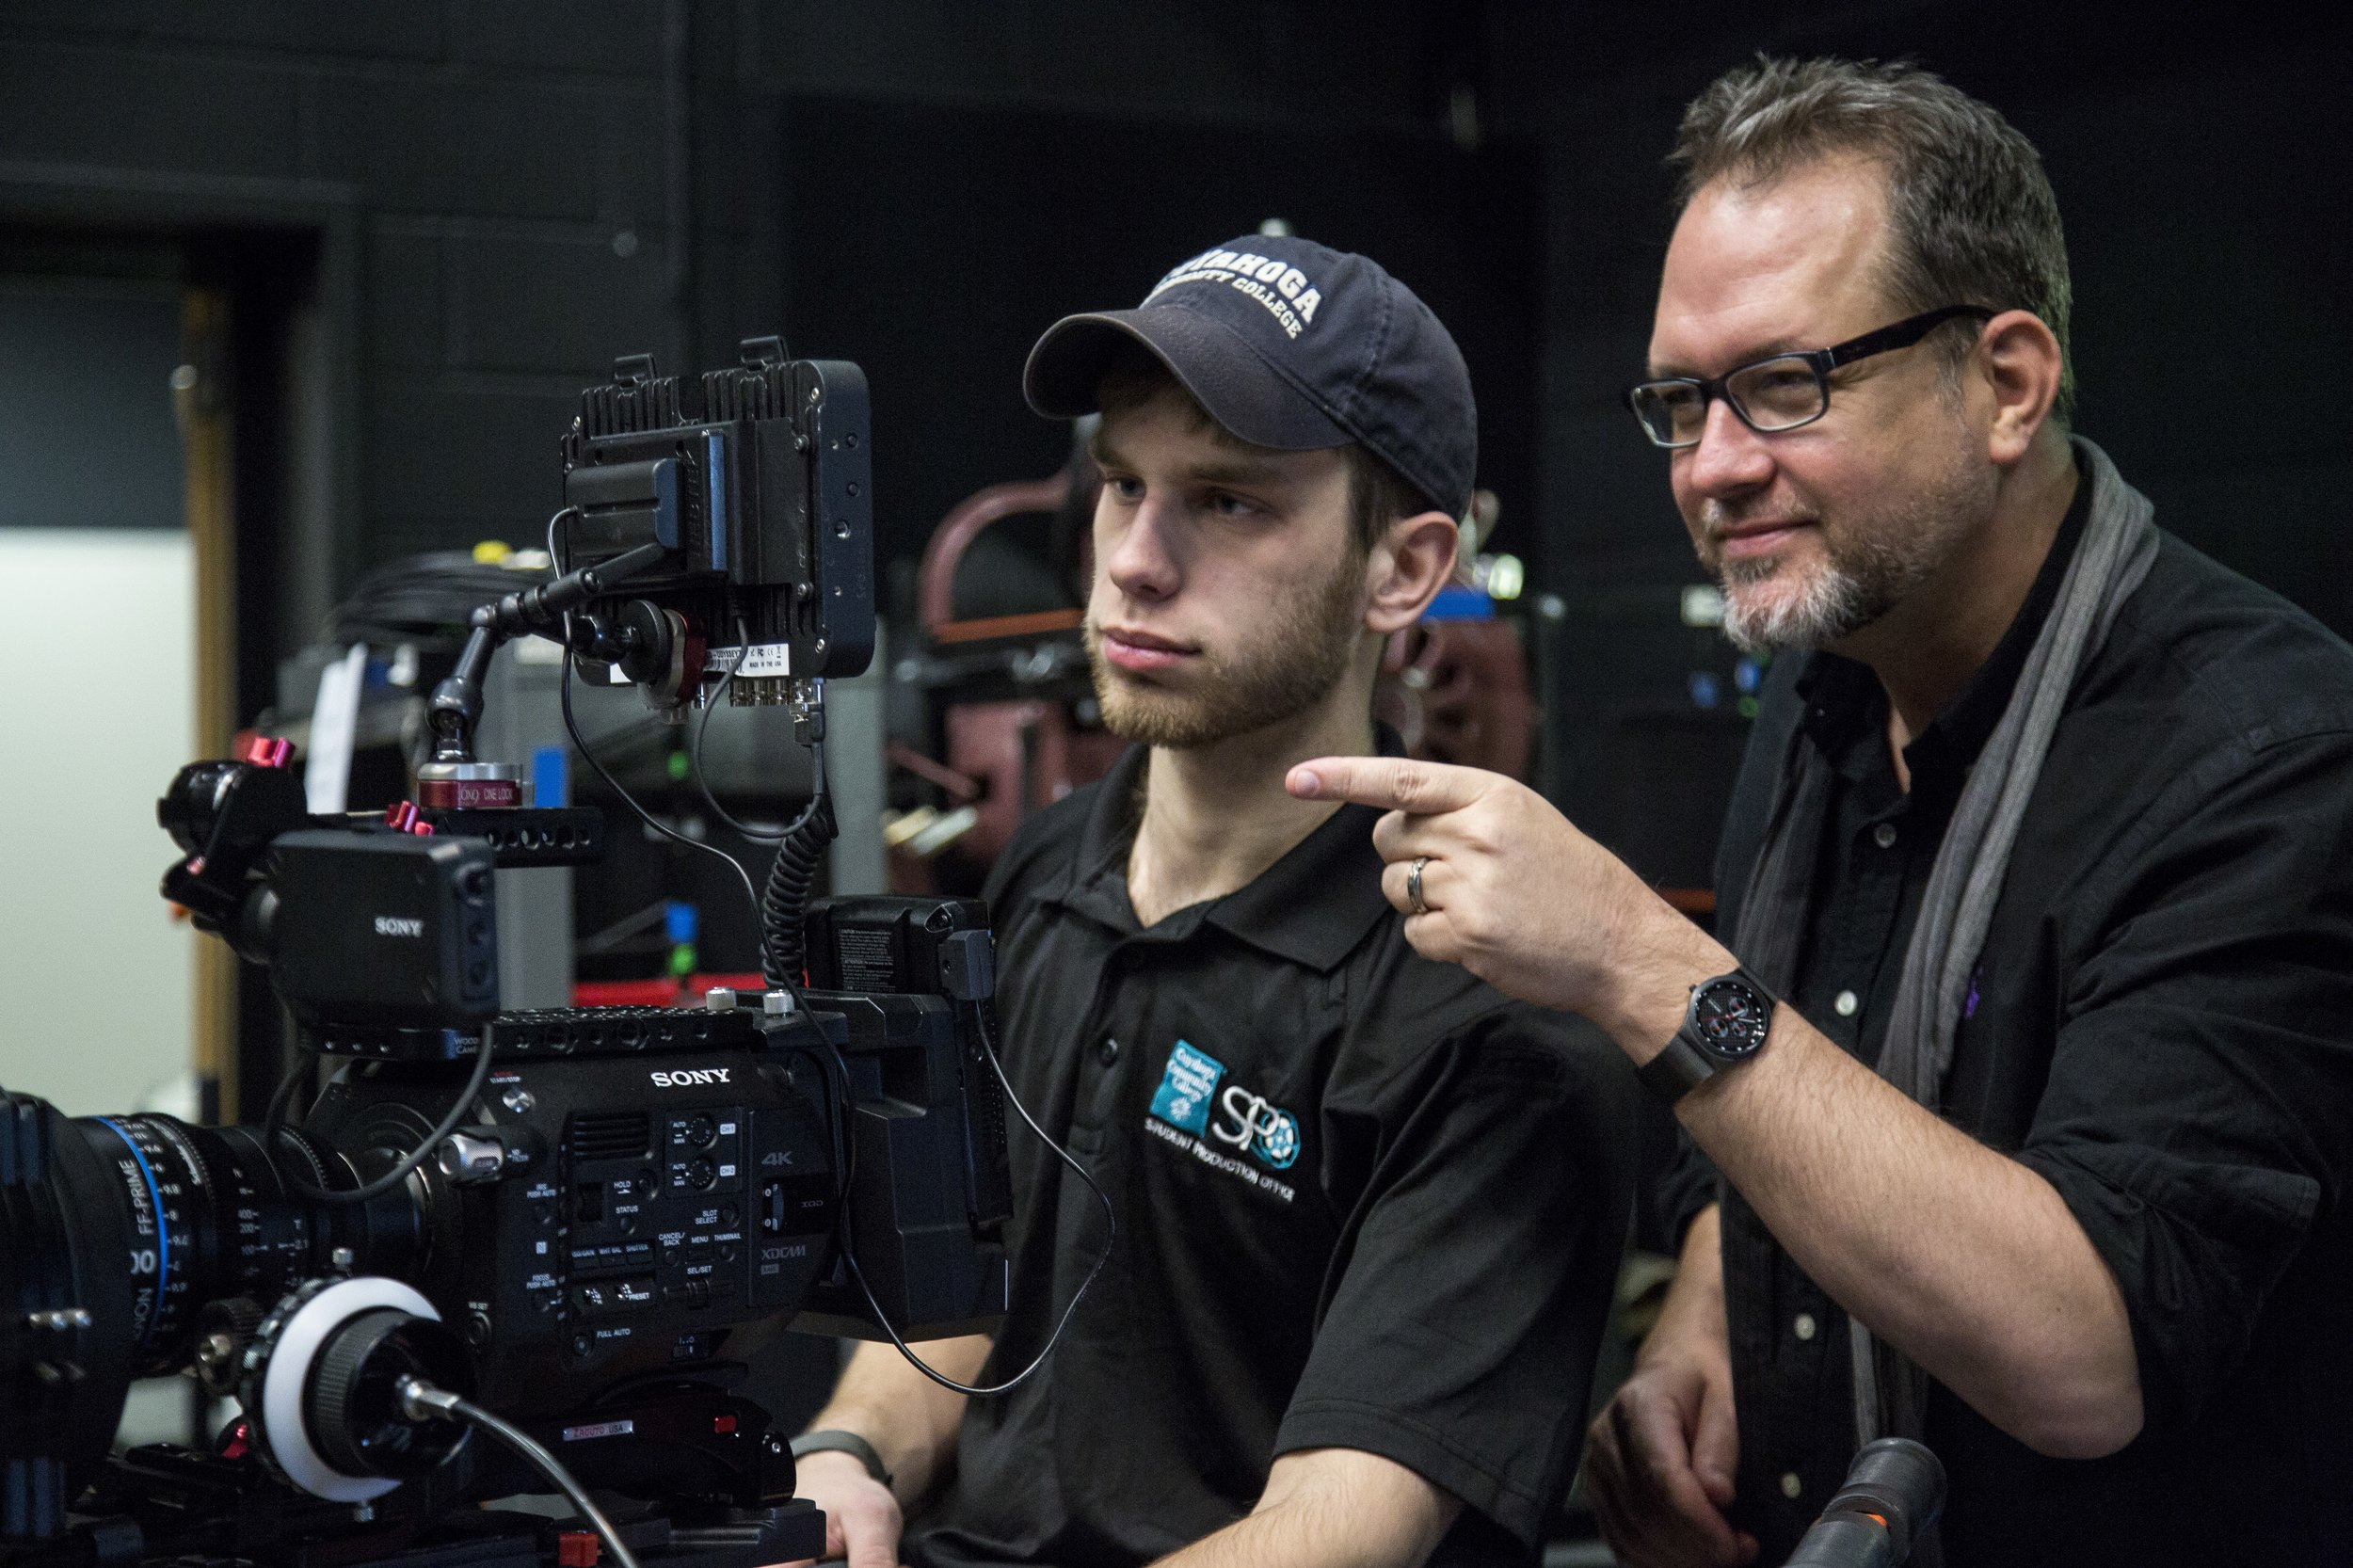 Director Emmett Murphy from showHive Productions